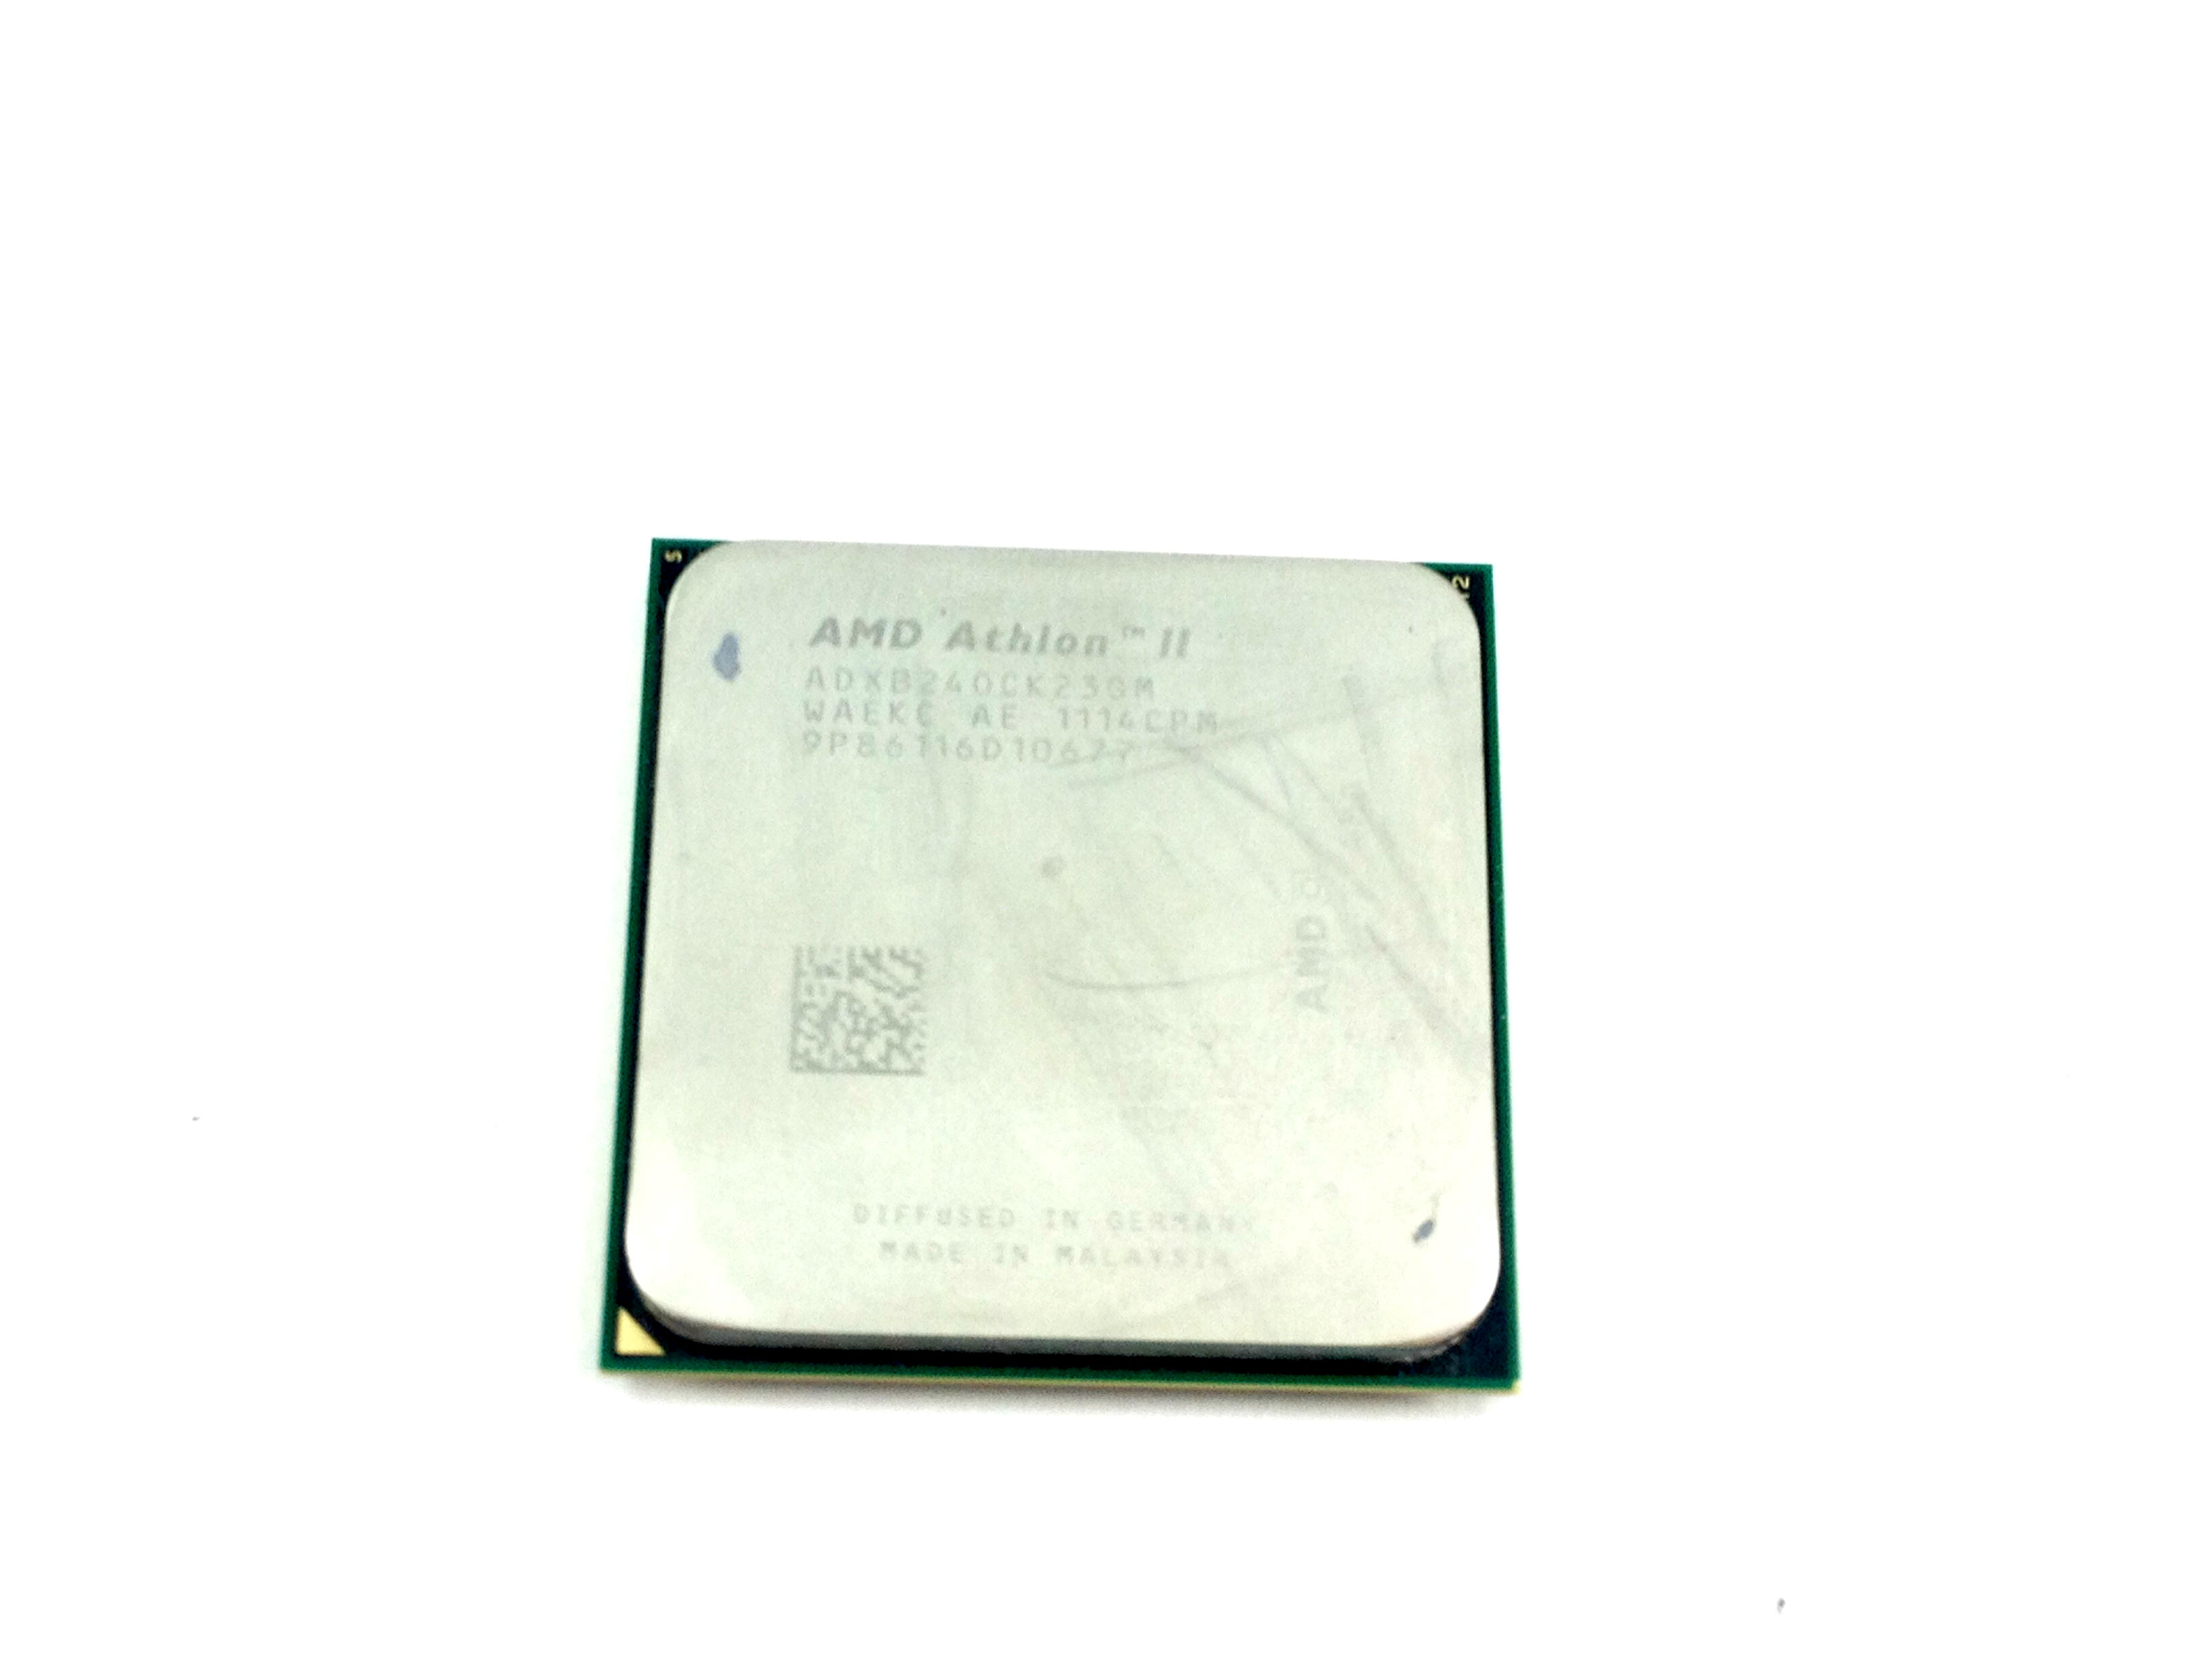 AMD Athlon II X2 B24 3.0GHz 2MB Am3 Dual Core Processor (ADXB240CK23GM)